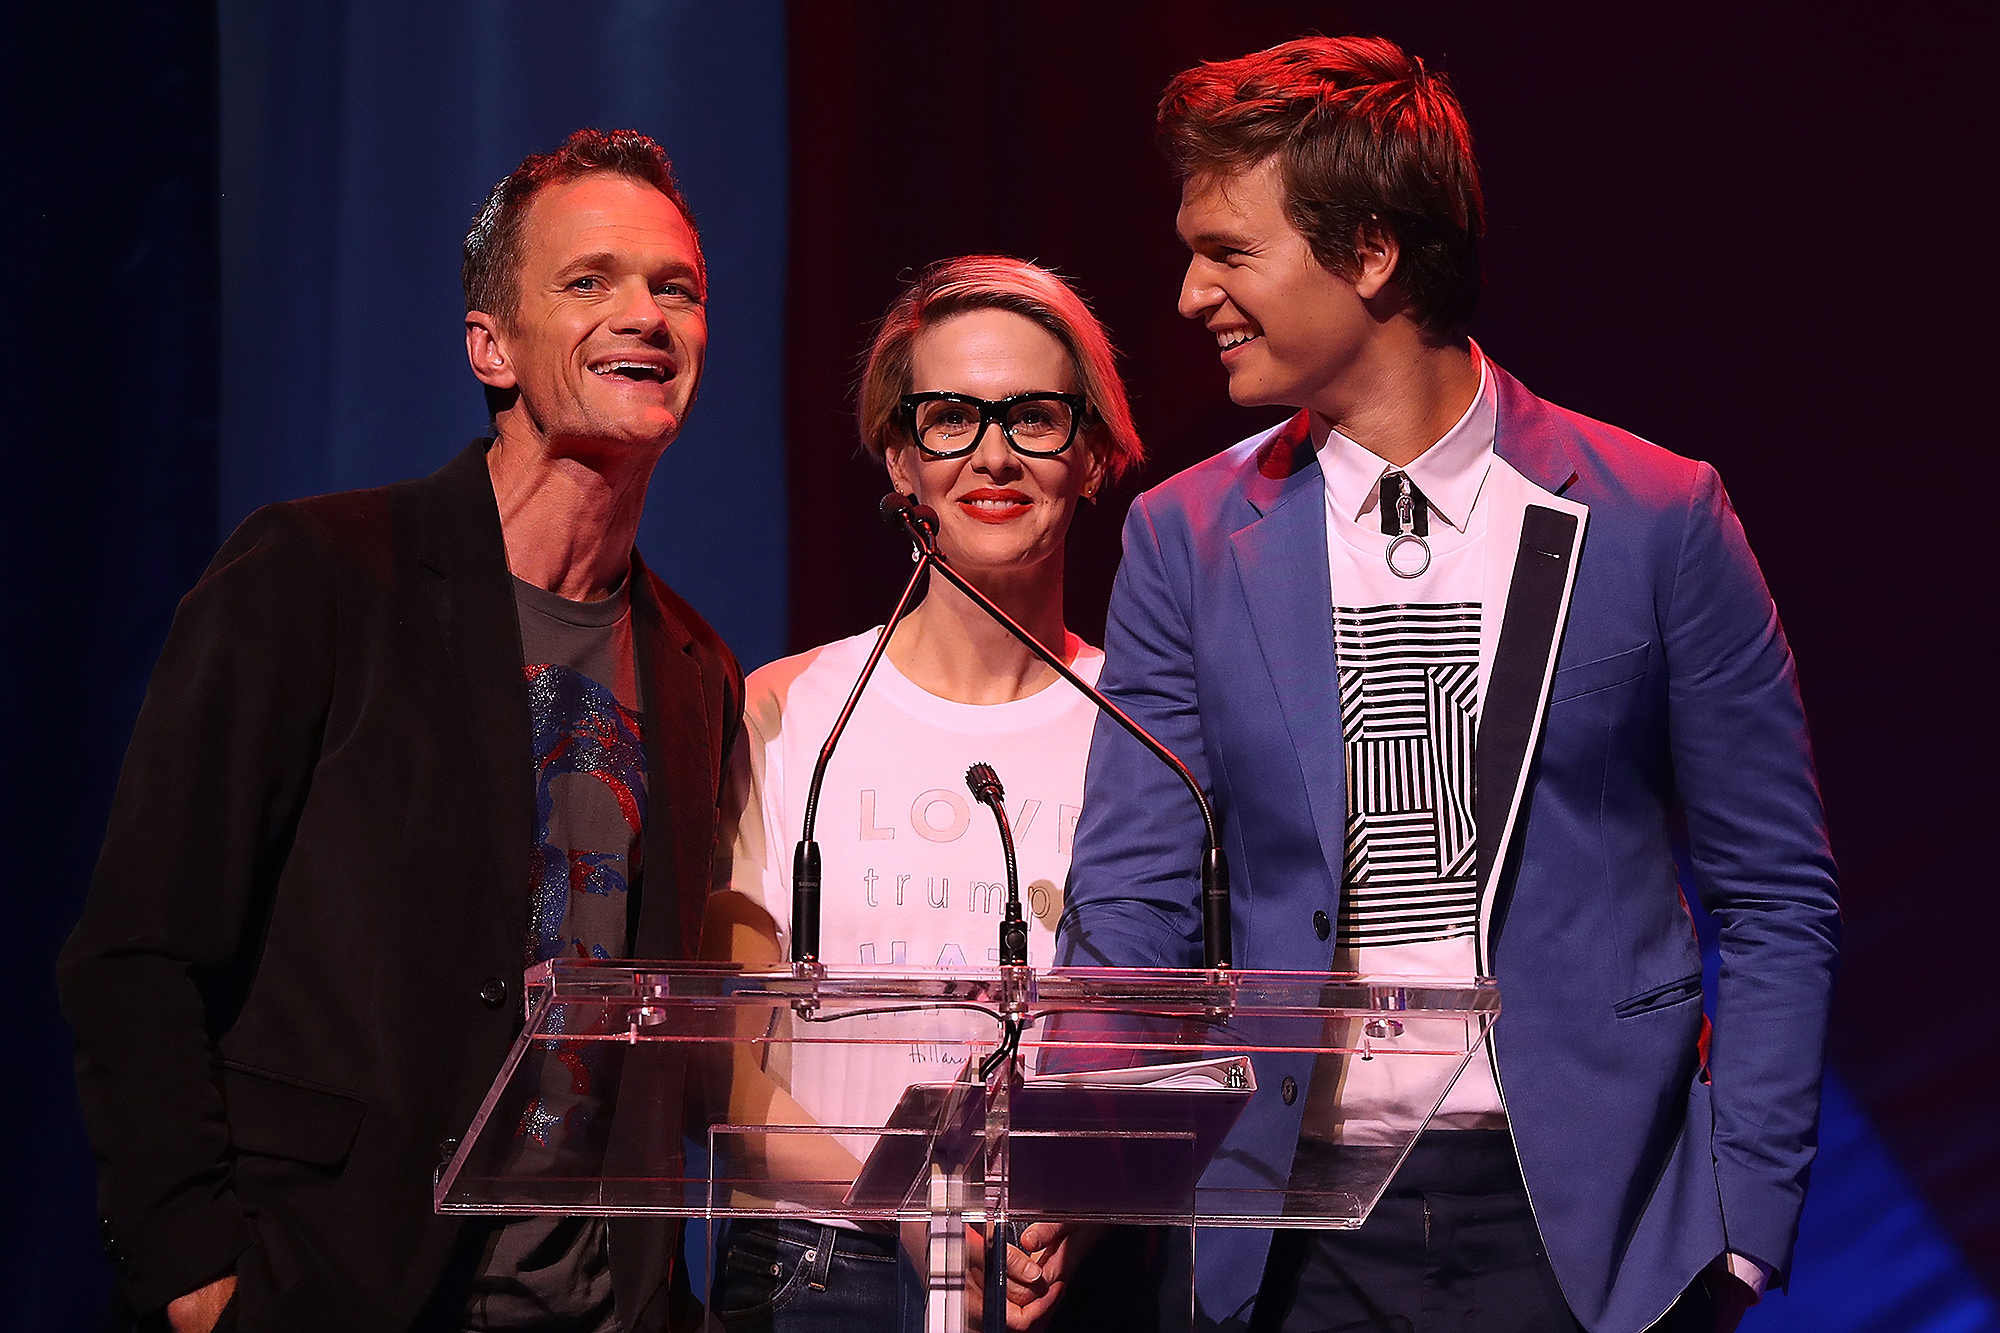 NEW YORK, NY - OCTOBER 17: (L-R) Actors Neil Patrick Harris, Sarah Paulson and Ansel Elgort appear on stage during the Hillary Victory Fund - Stronger Together concert at St. James Theatre on October 17, 2016 in New York City. Broadway stars and celebrities performed during a fundraising concert for the Hillary Clinton campaign. (Photo by Justin Sullivan/Getty Images)